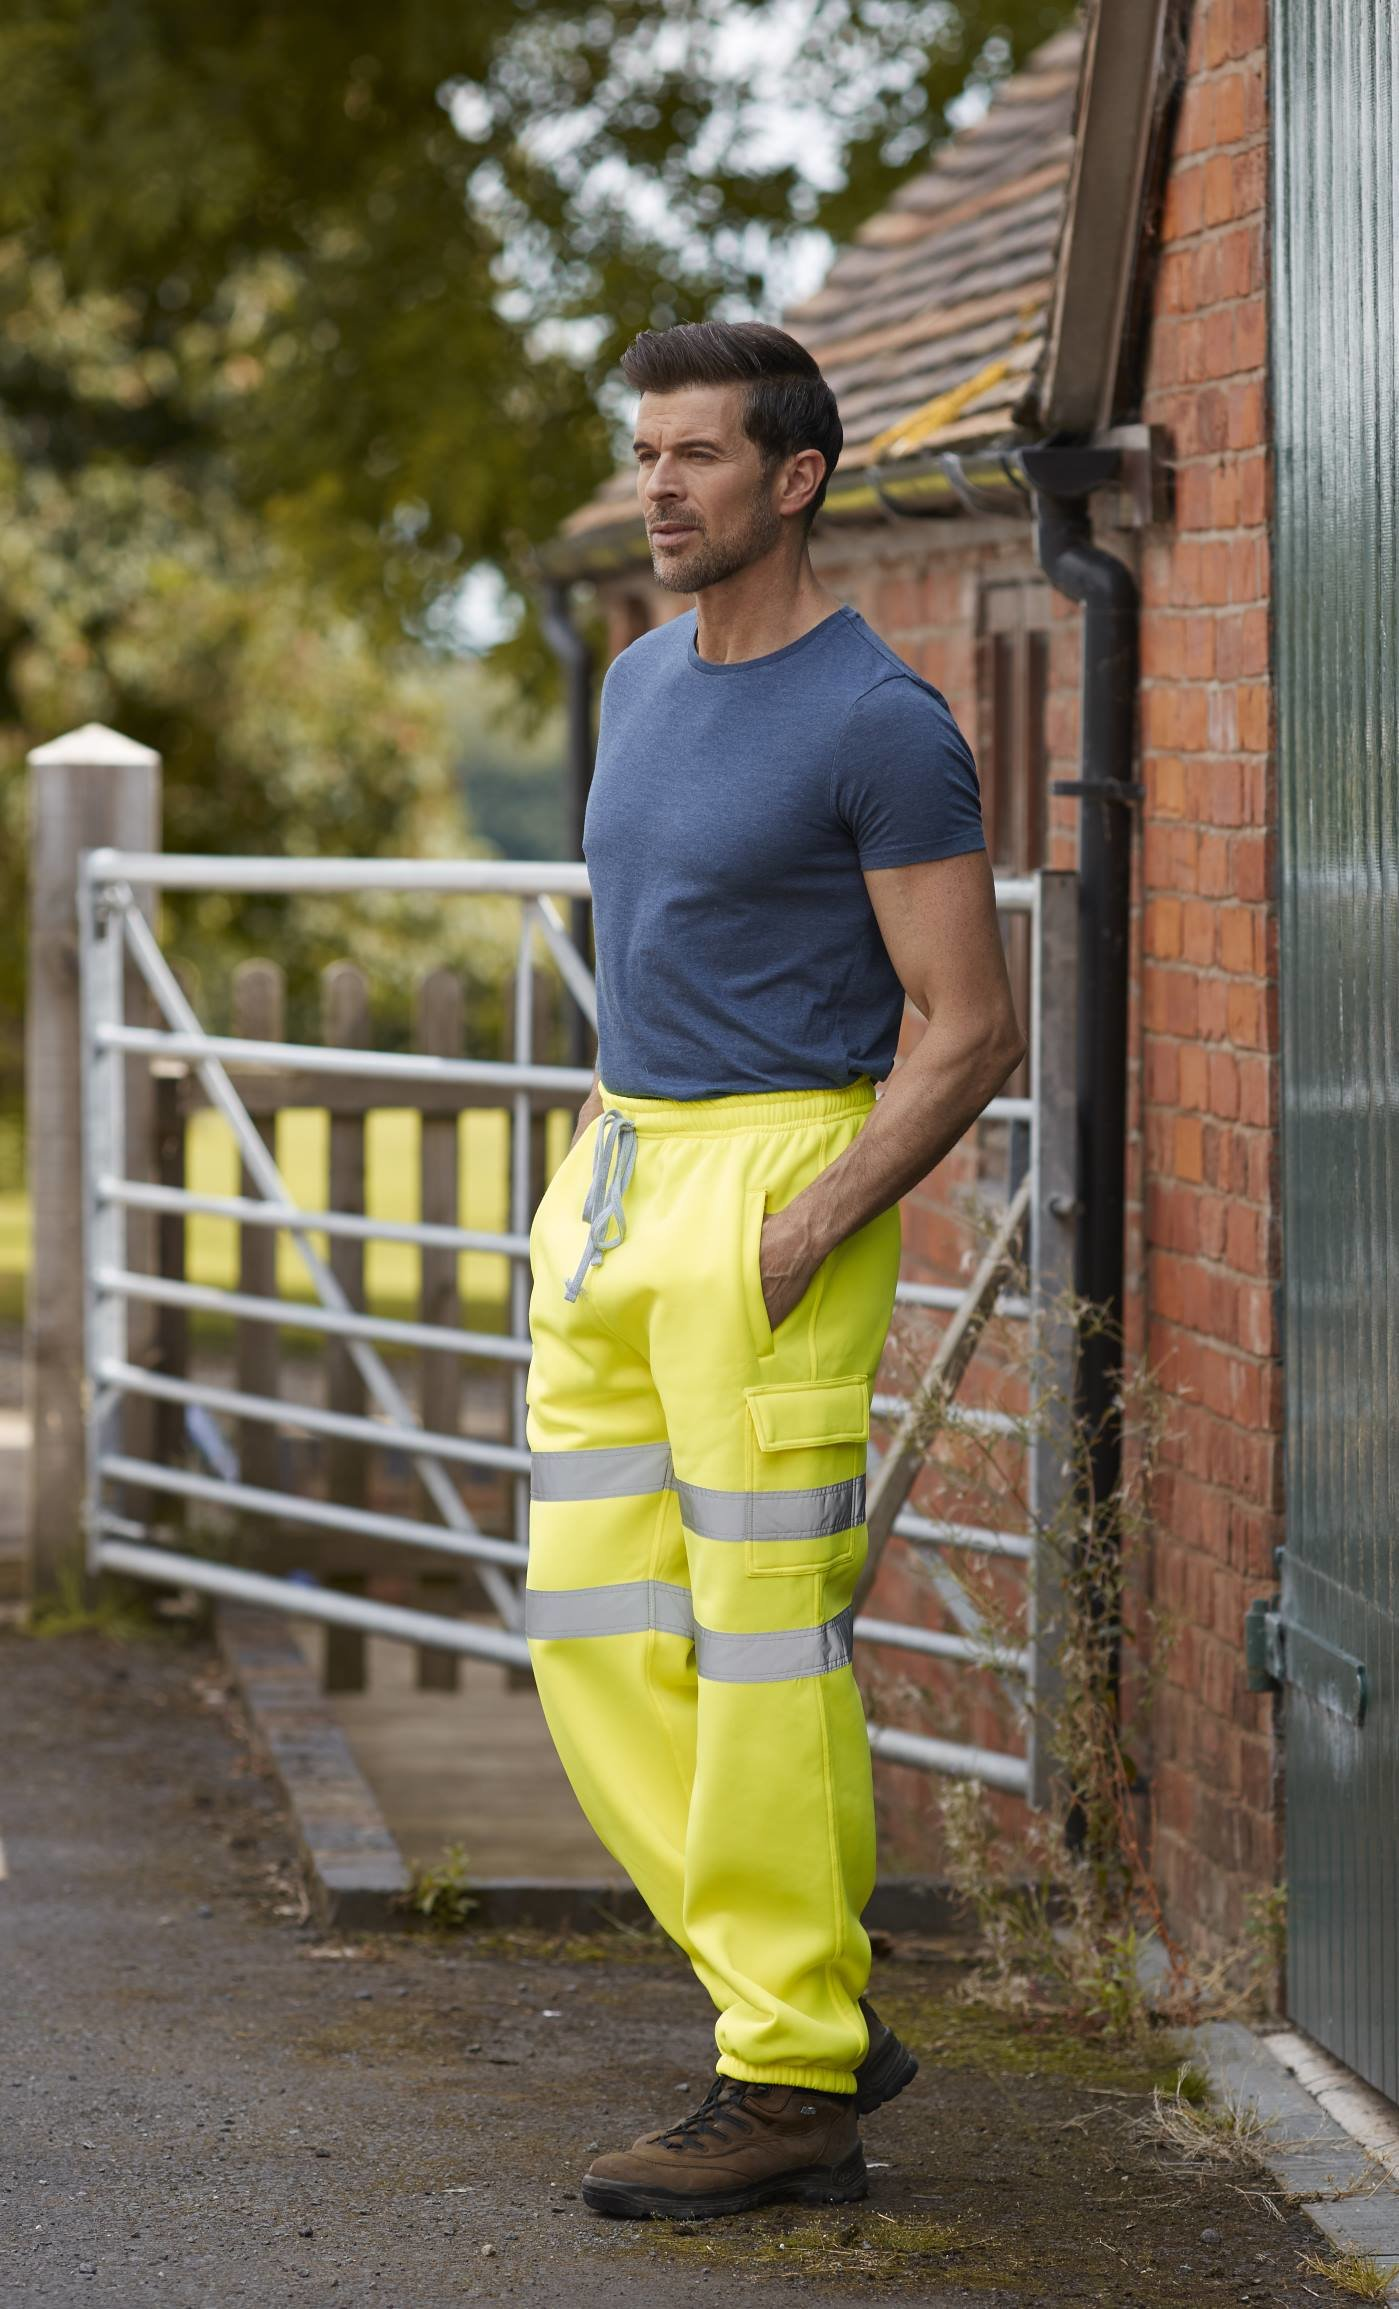 Embroidered Hi Vis Jogginf Pants, yellow, www.ontimeprint.co.uk